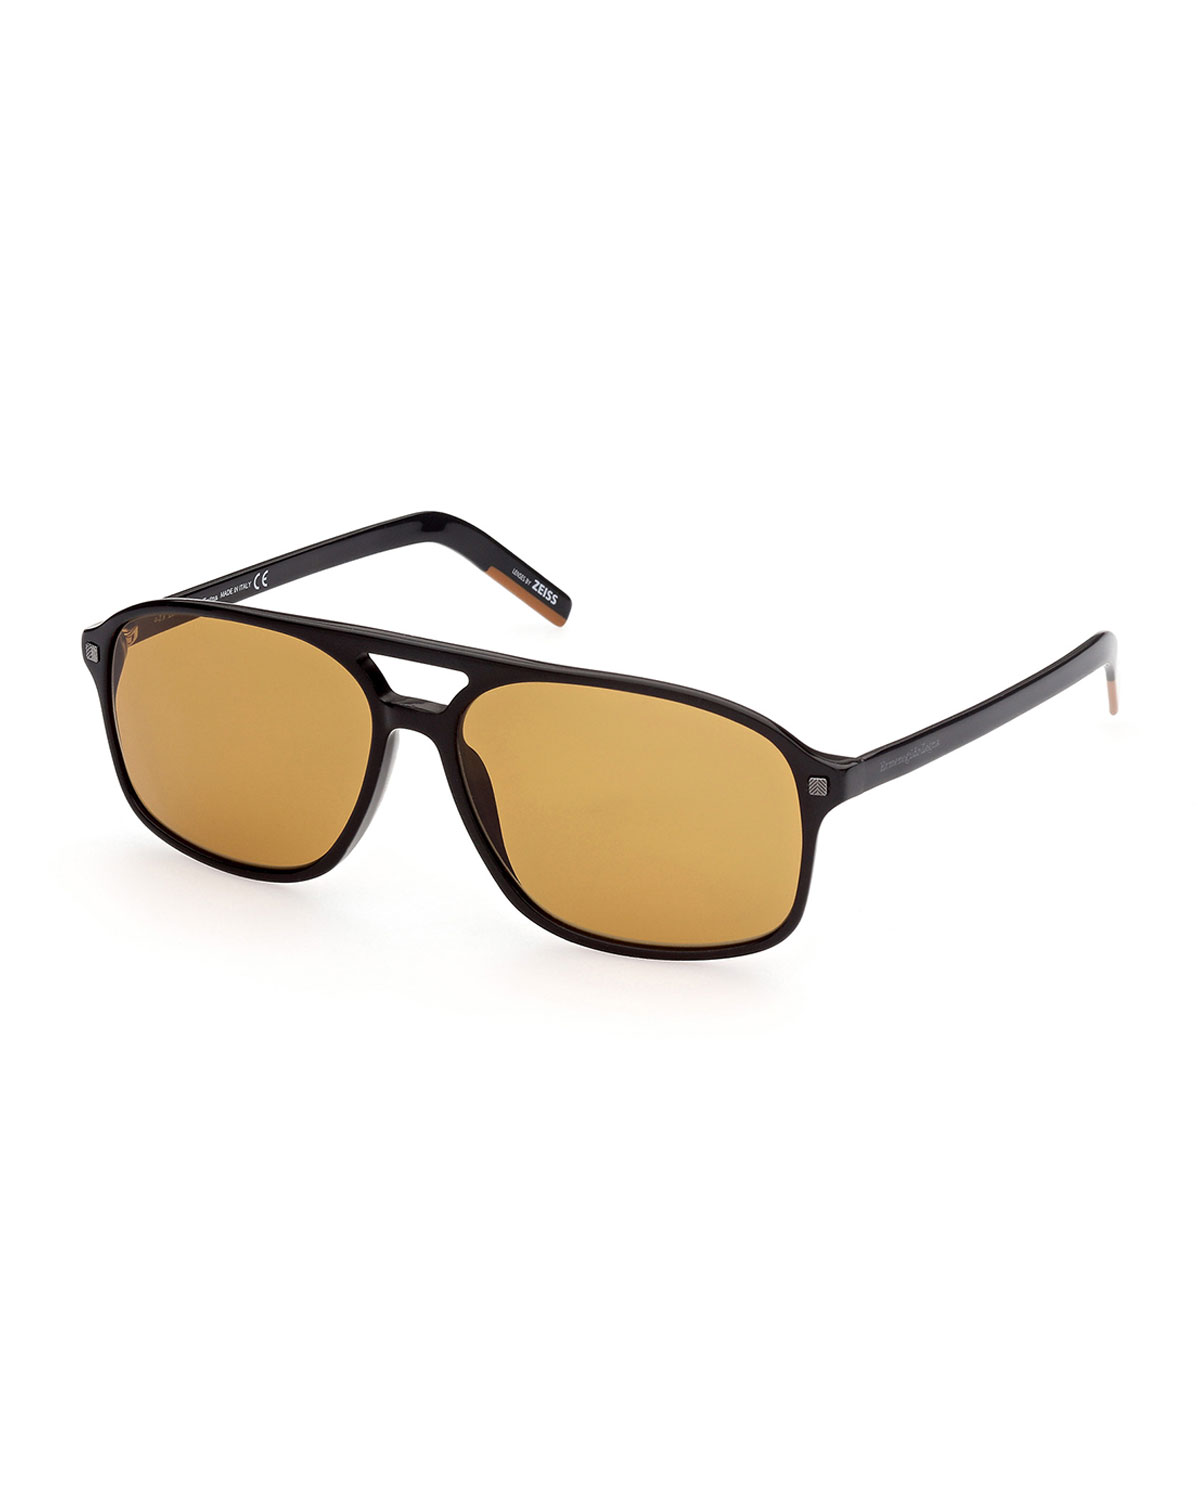 Ermenegildo Zegna Men's Solid Double-Bridge Aviator Sunglasses